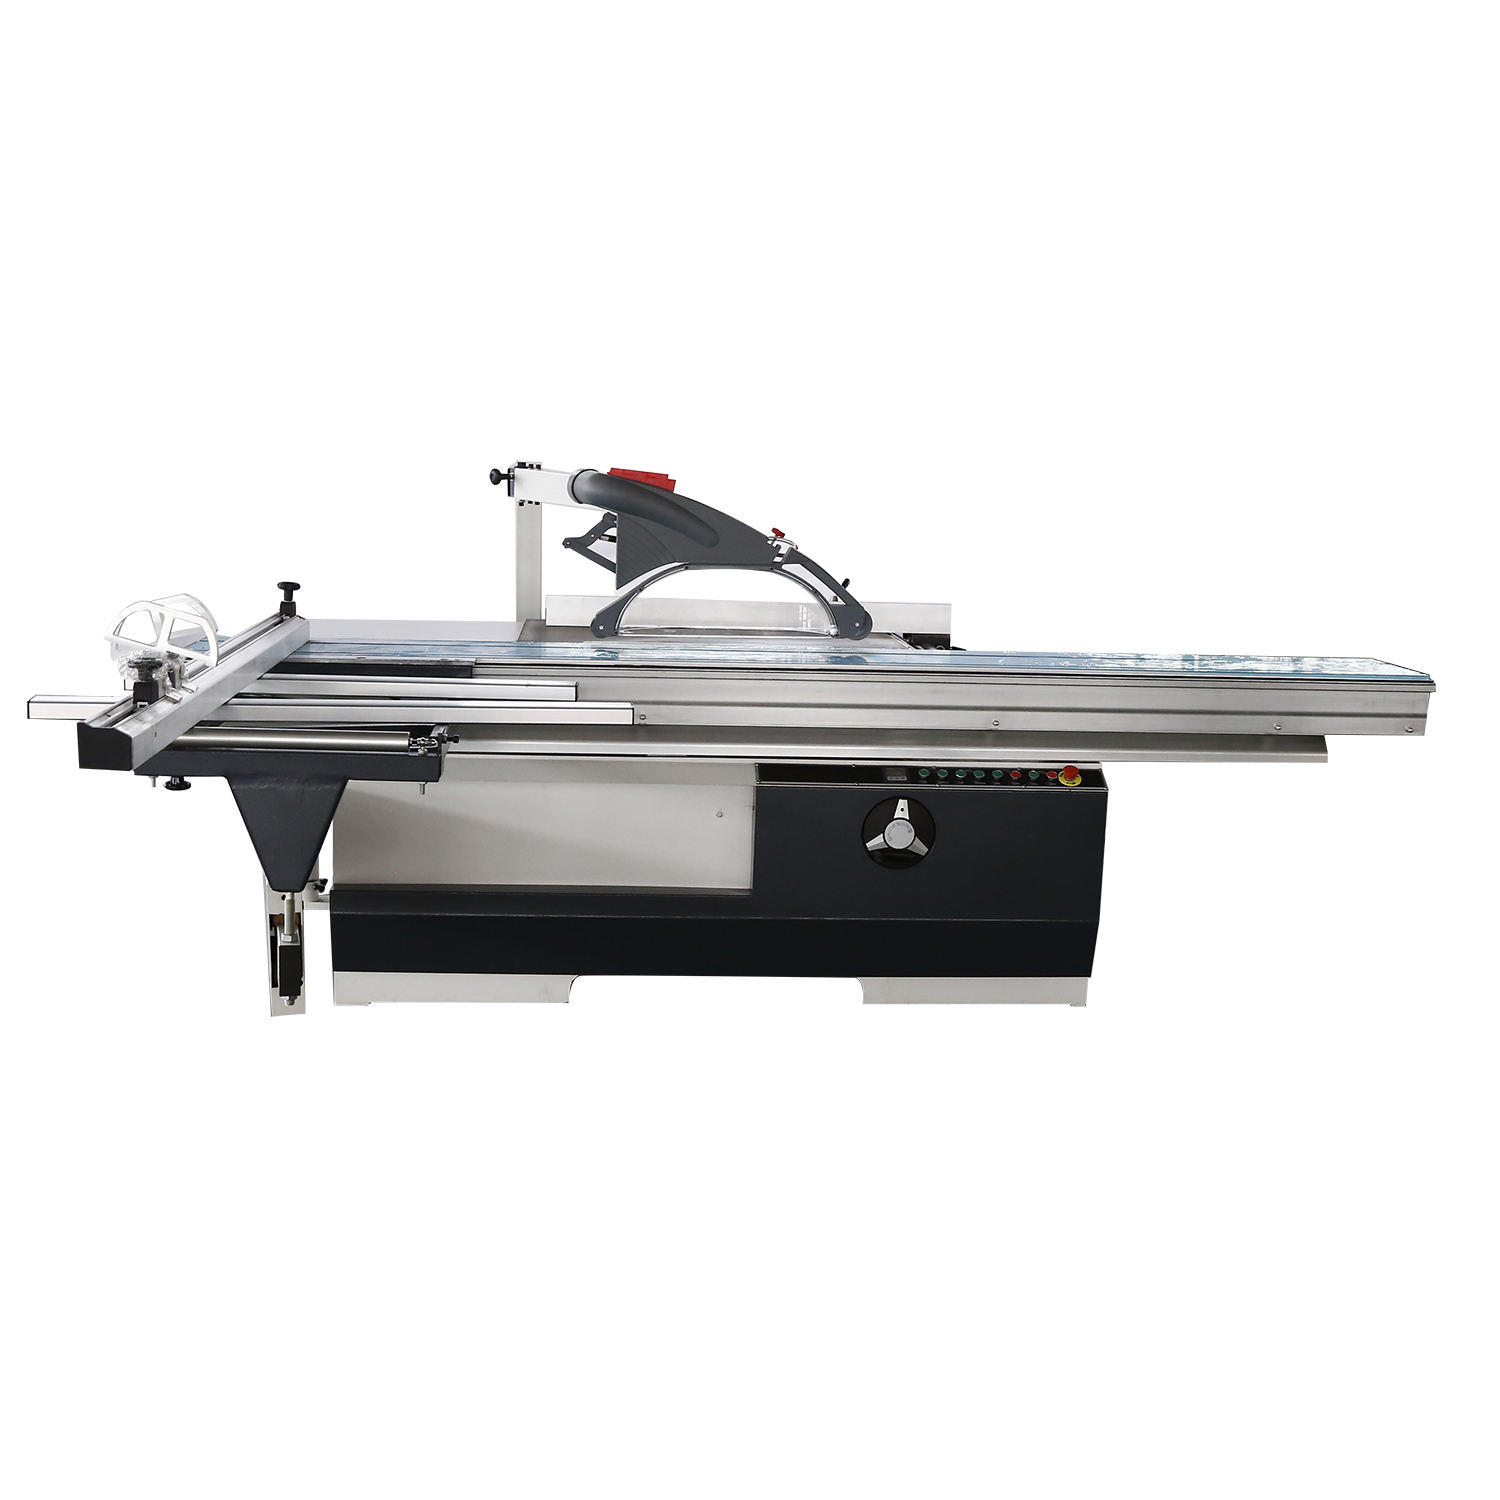 Woodworking Sliding Table Panel Saw With Scoring Saw Blade